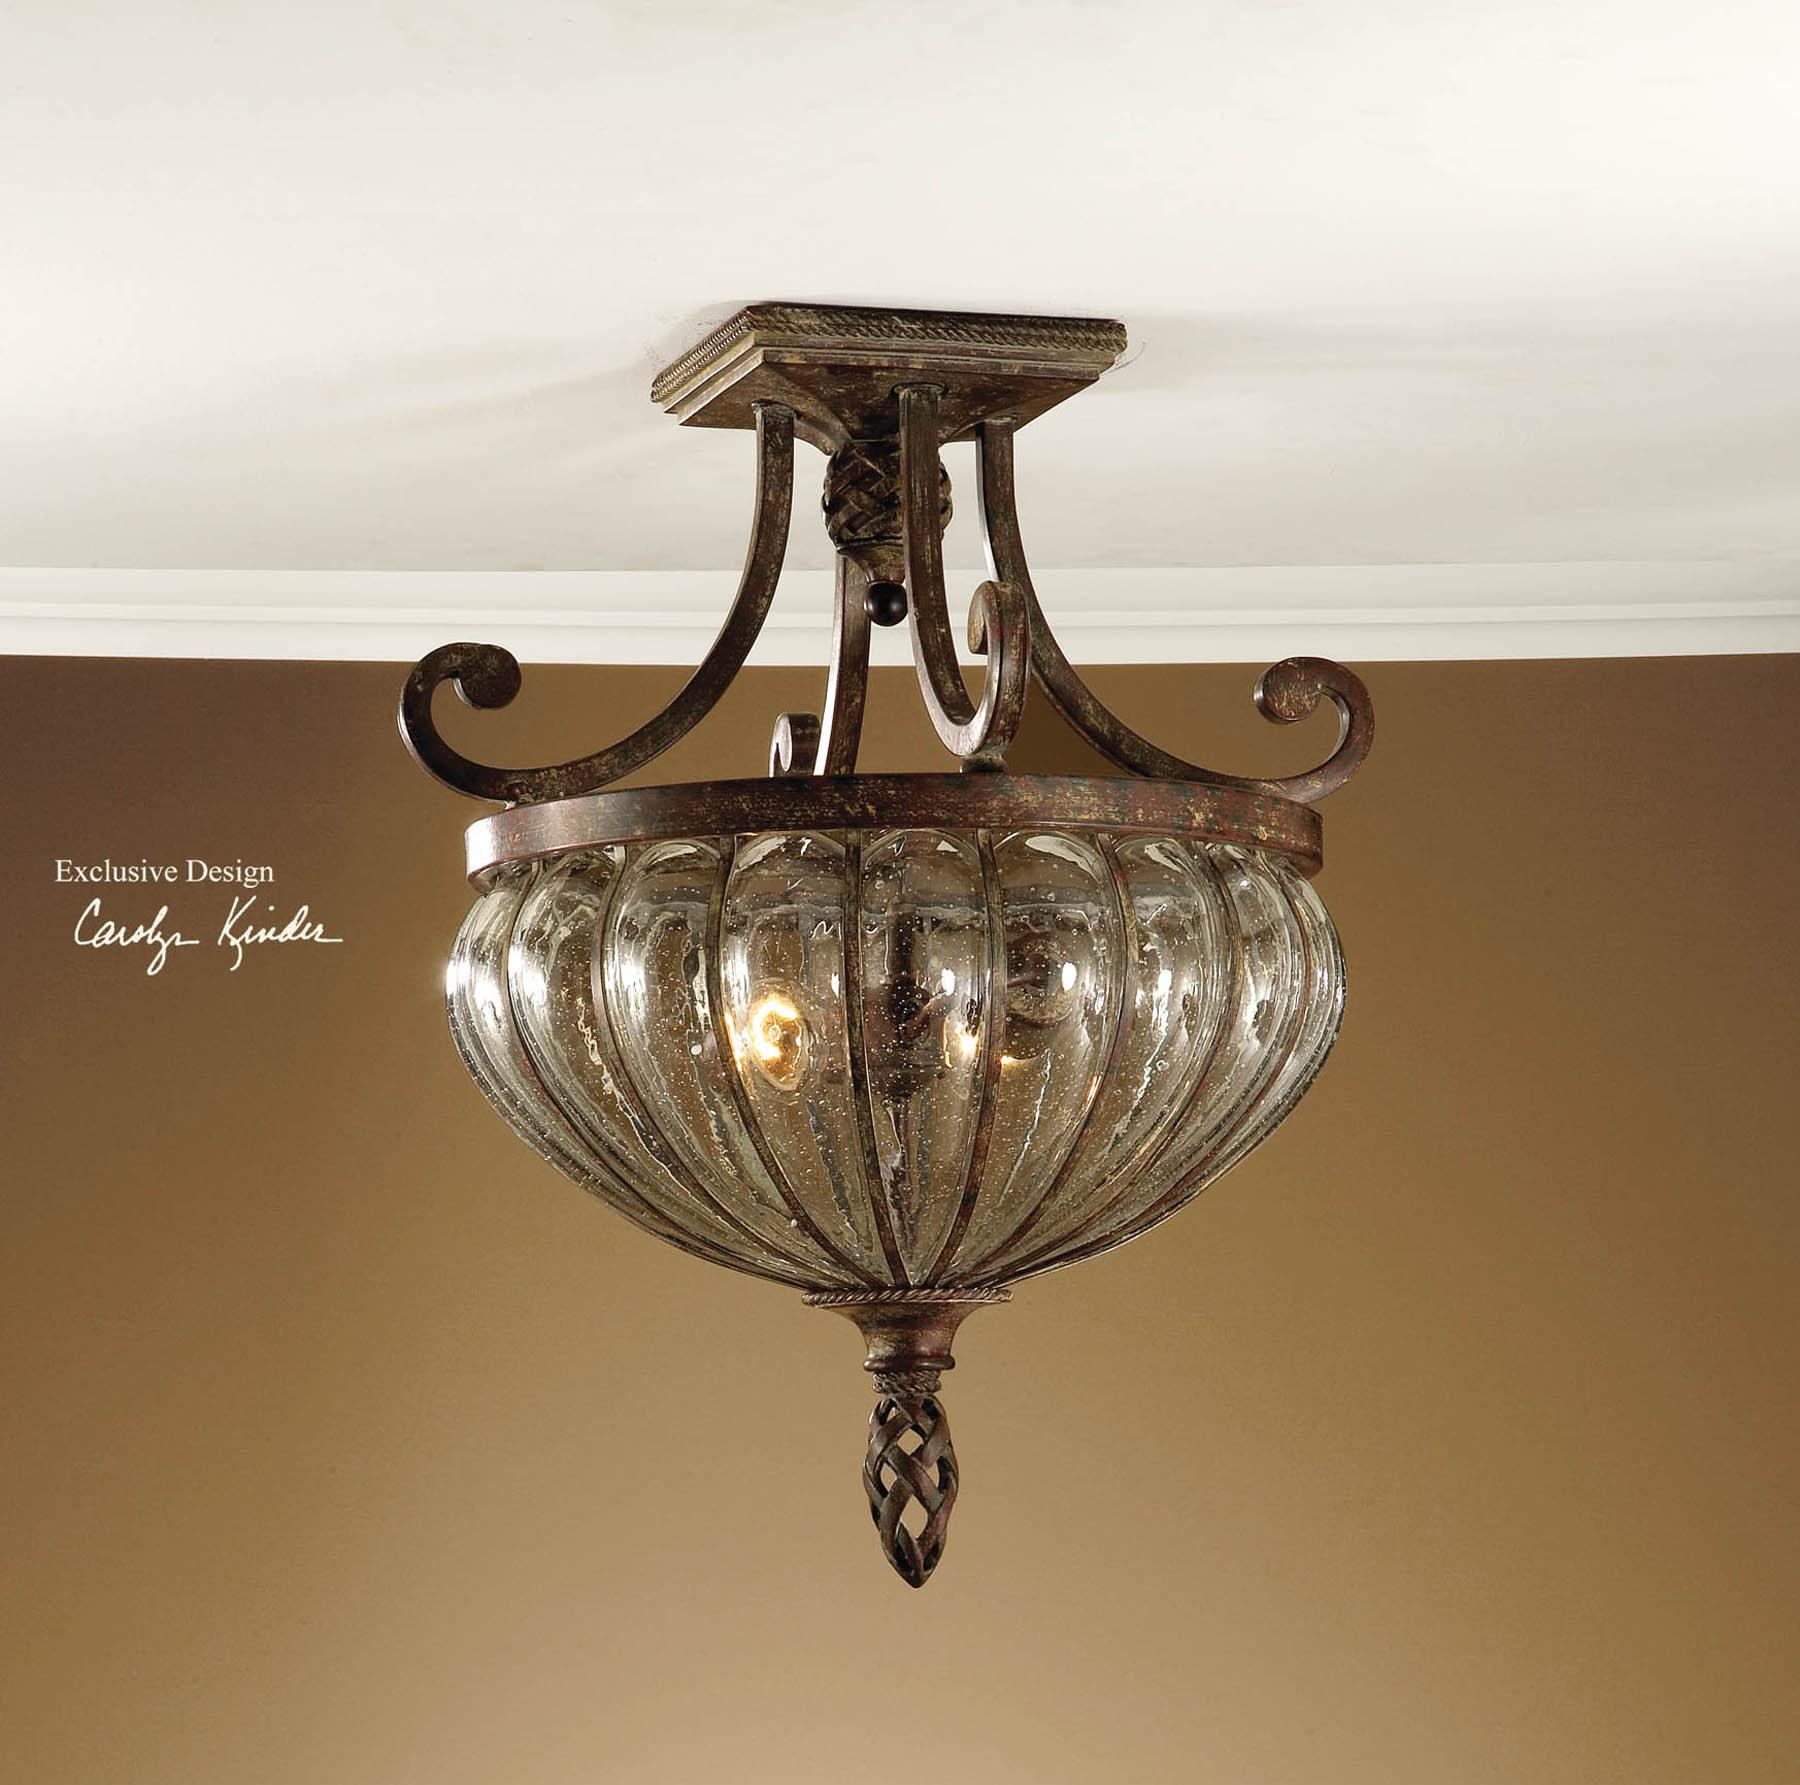 Uttermost Lighting Fixtures Galeana 2-Light Semi Flush Mount - Item Number: 22208